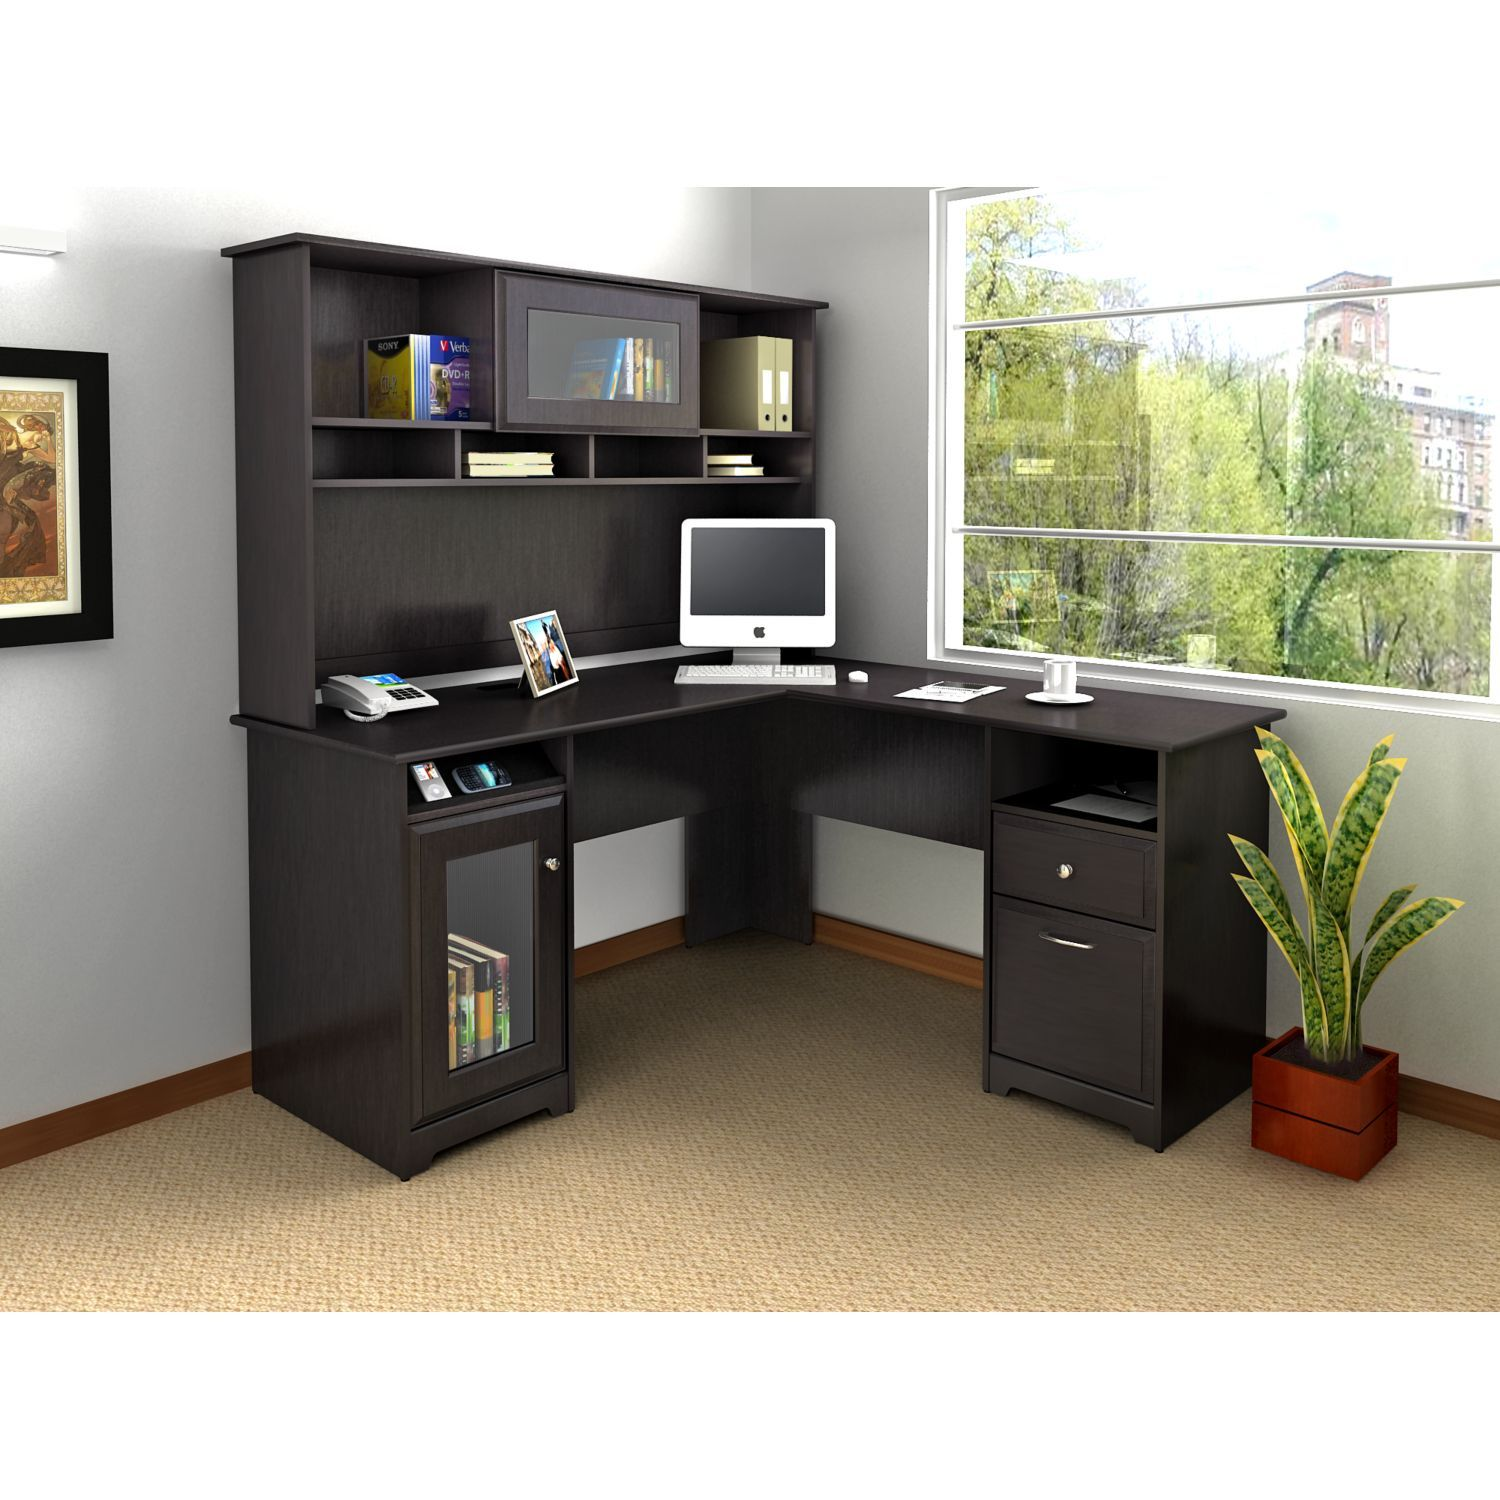 Pin On Xclusive Office Decoration